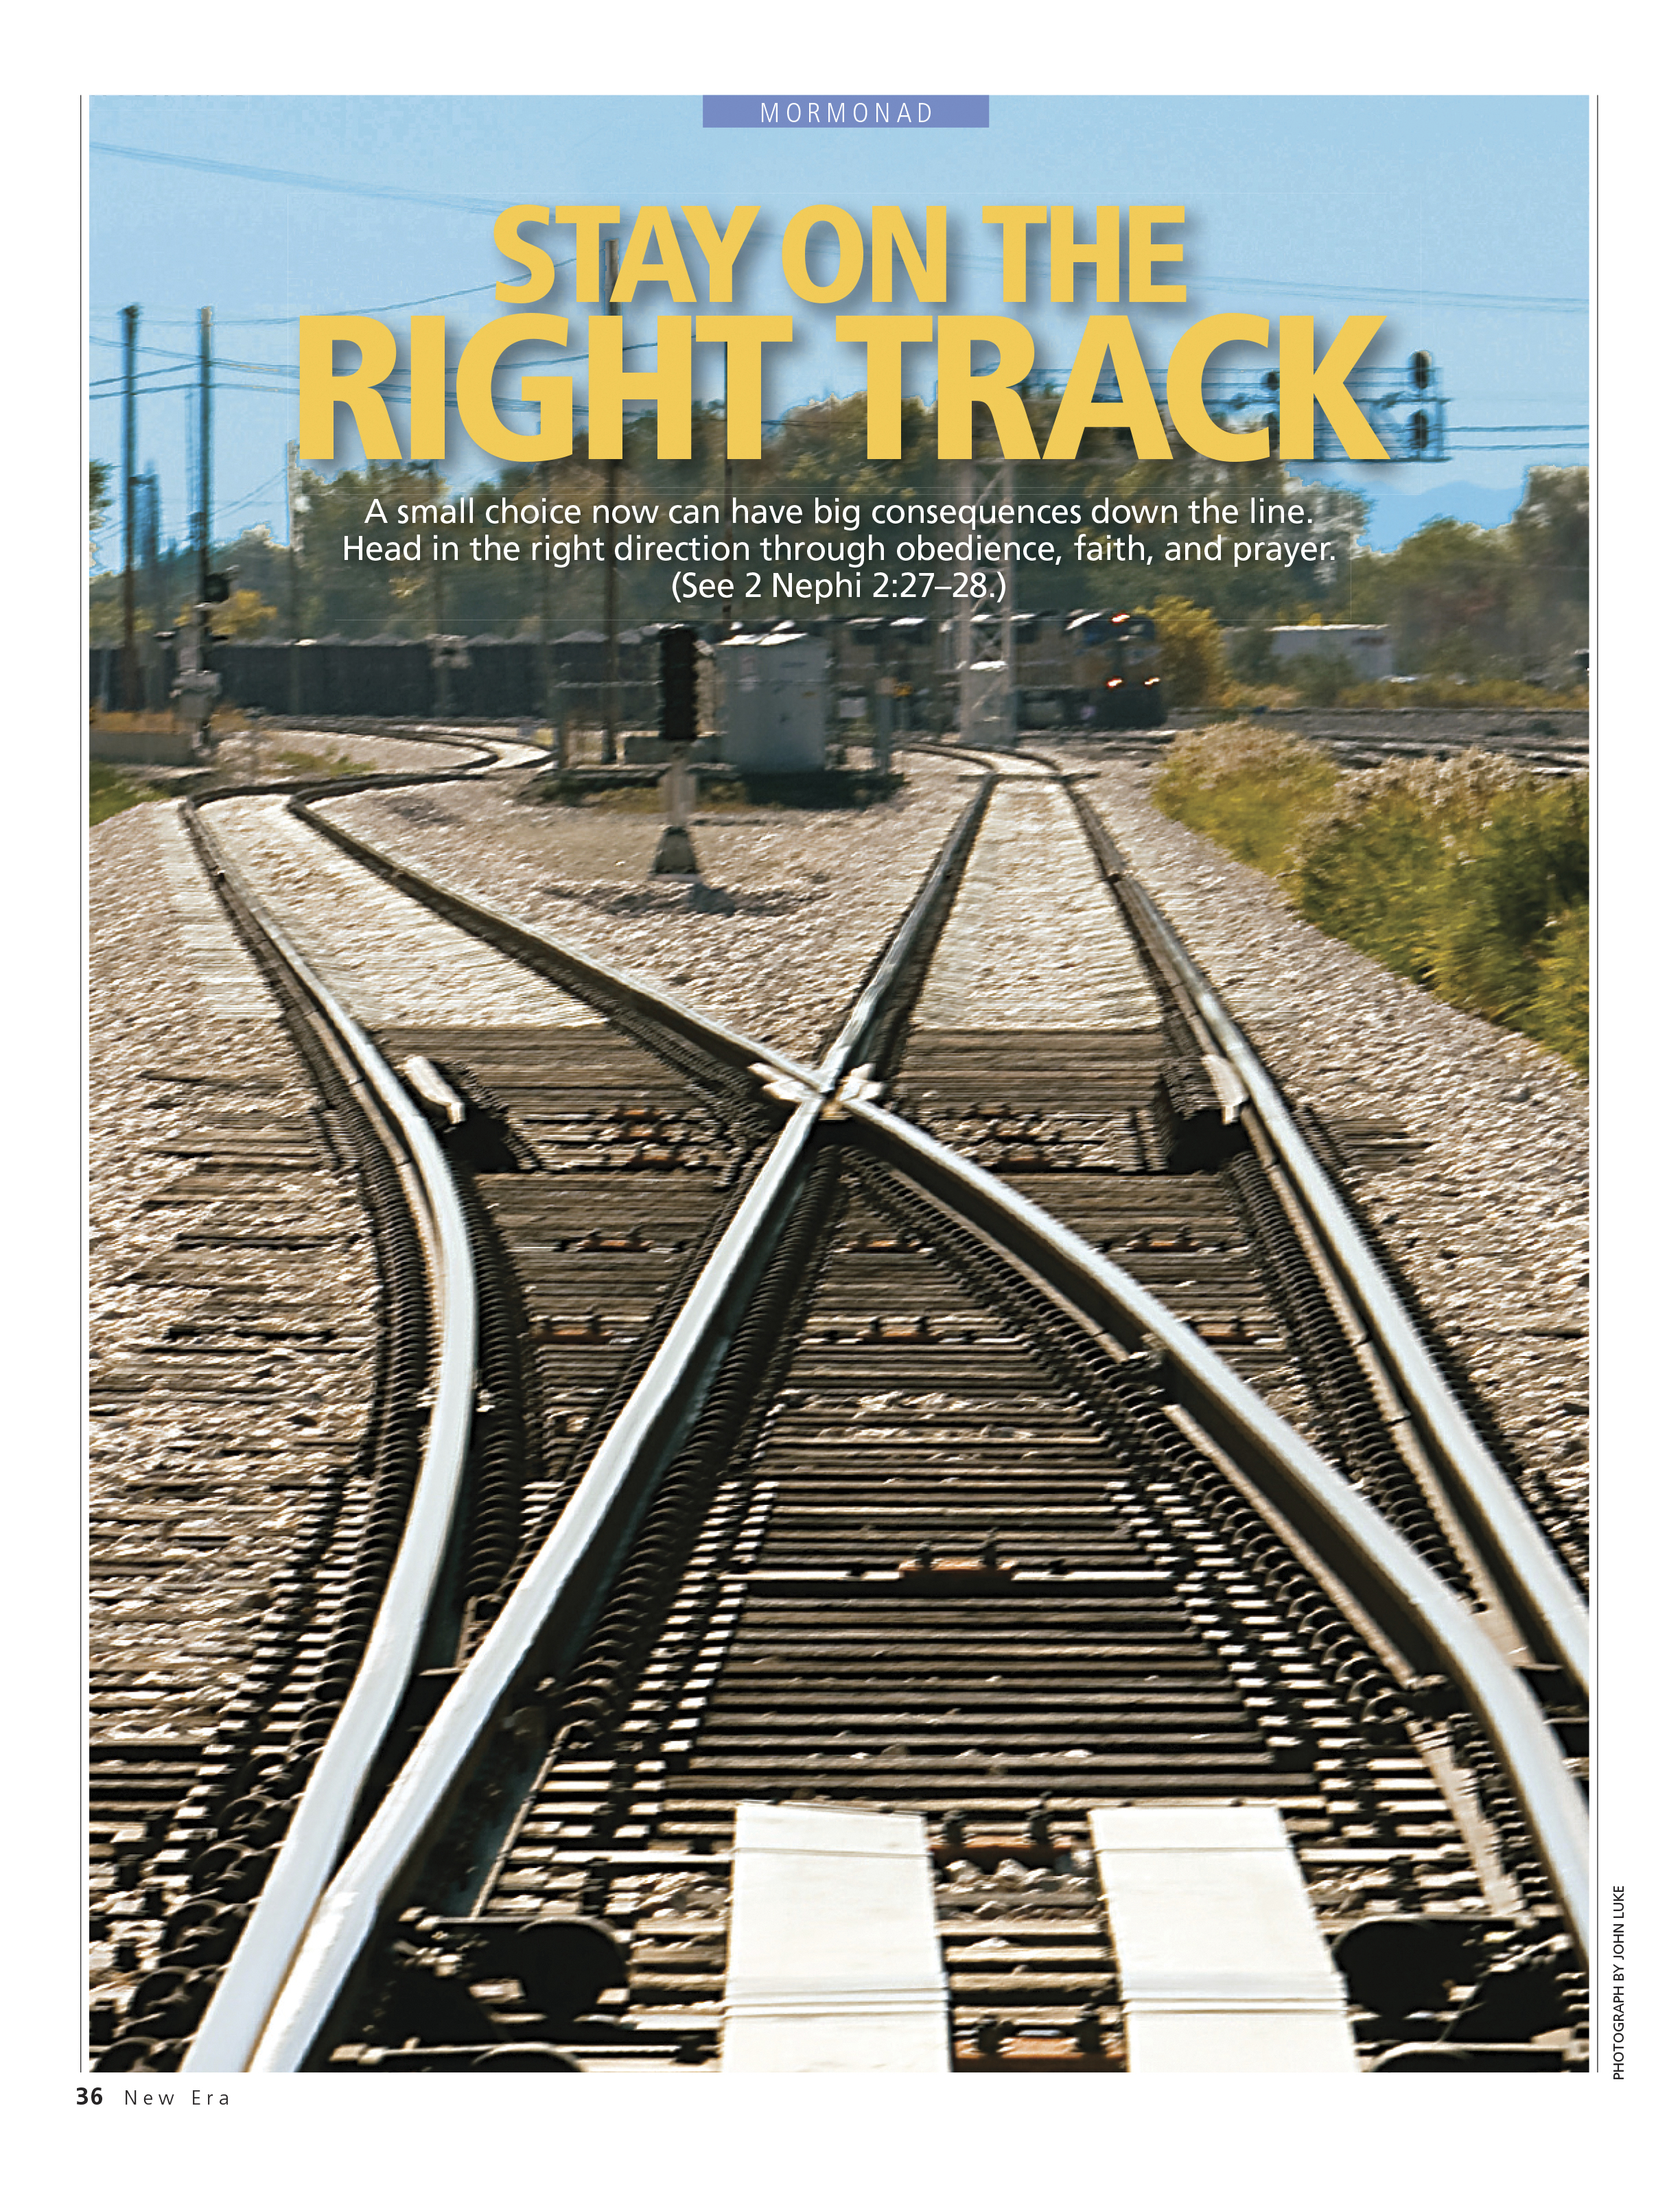 Stay on the Right Track. A small choice now can have big consequences down the line. Head in the right direction through obedience, faith, and prayer. (See 2 Nephi 2:27–28.) Mar. 2010 © undefined ipCode 1.